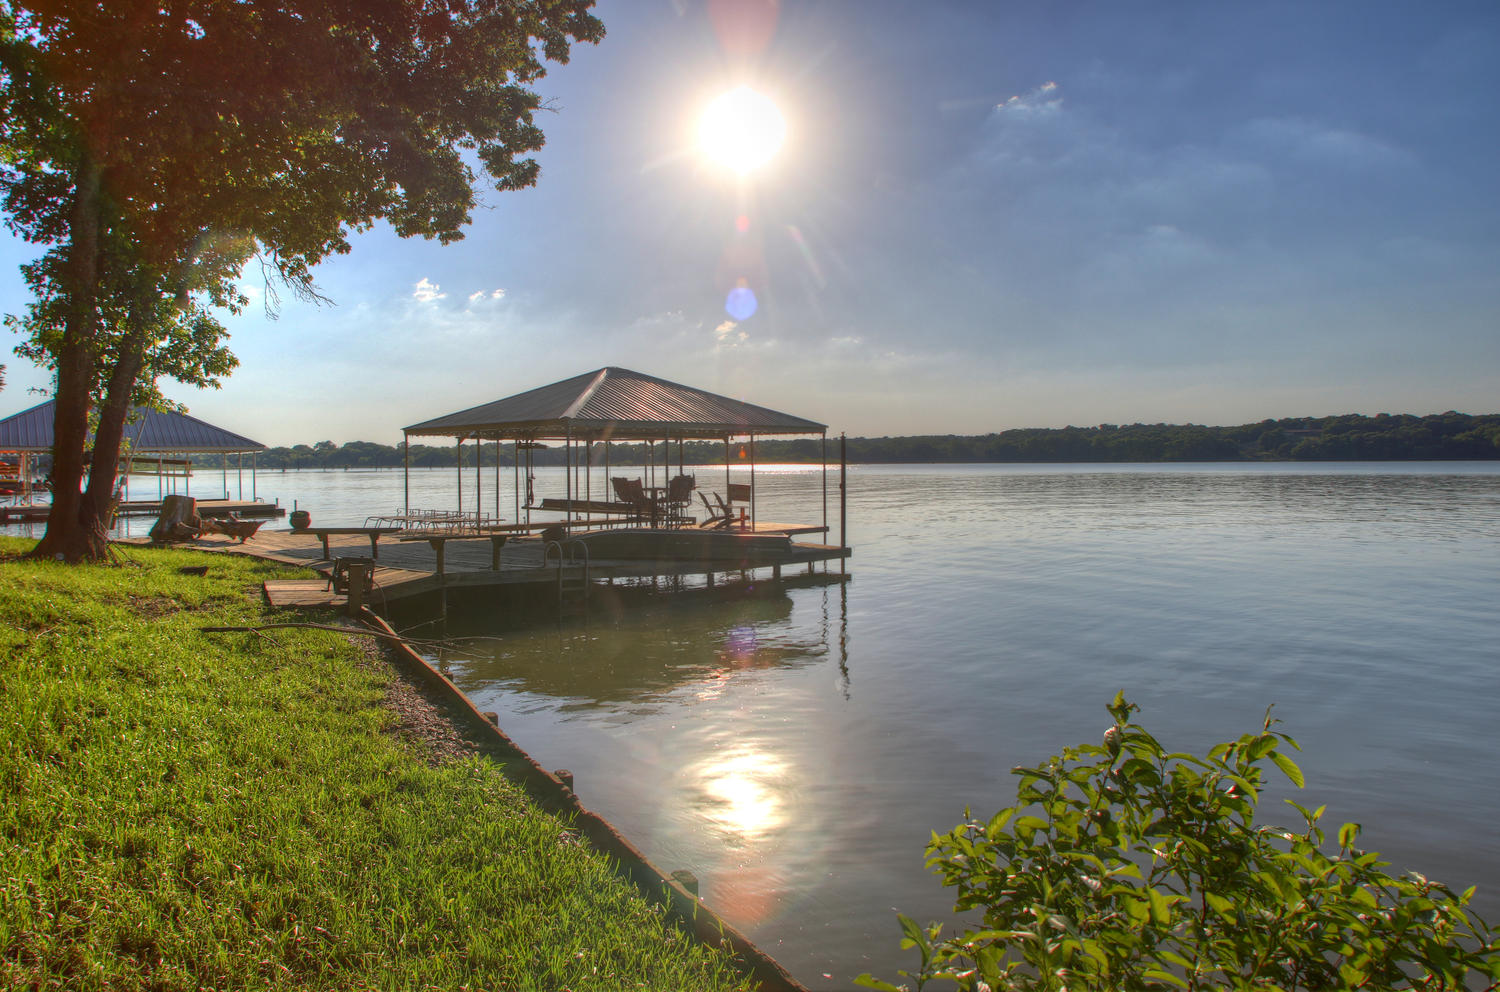 Wonderful boat dock with power lift